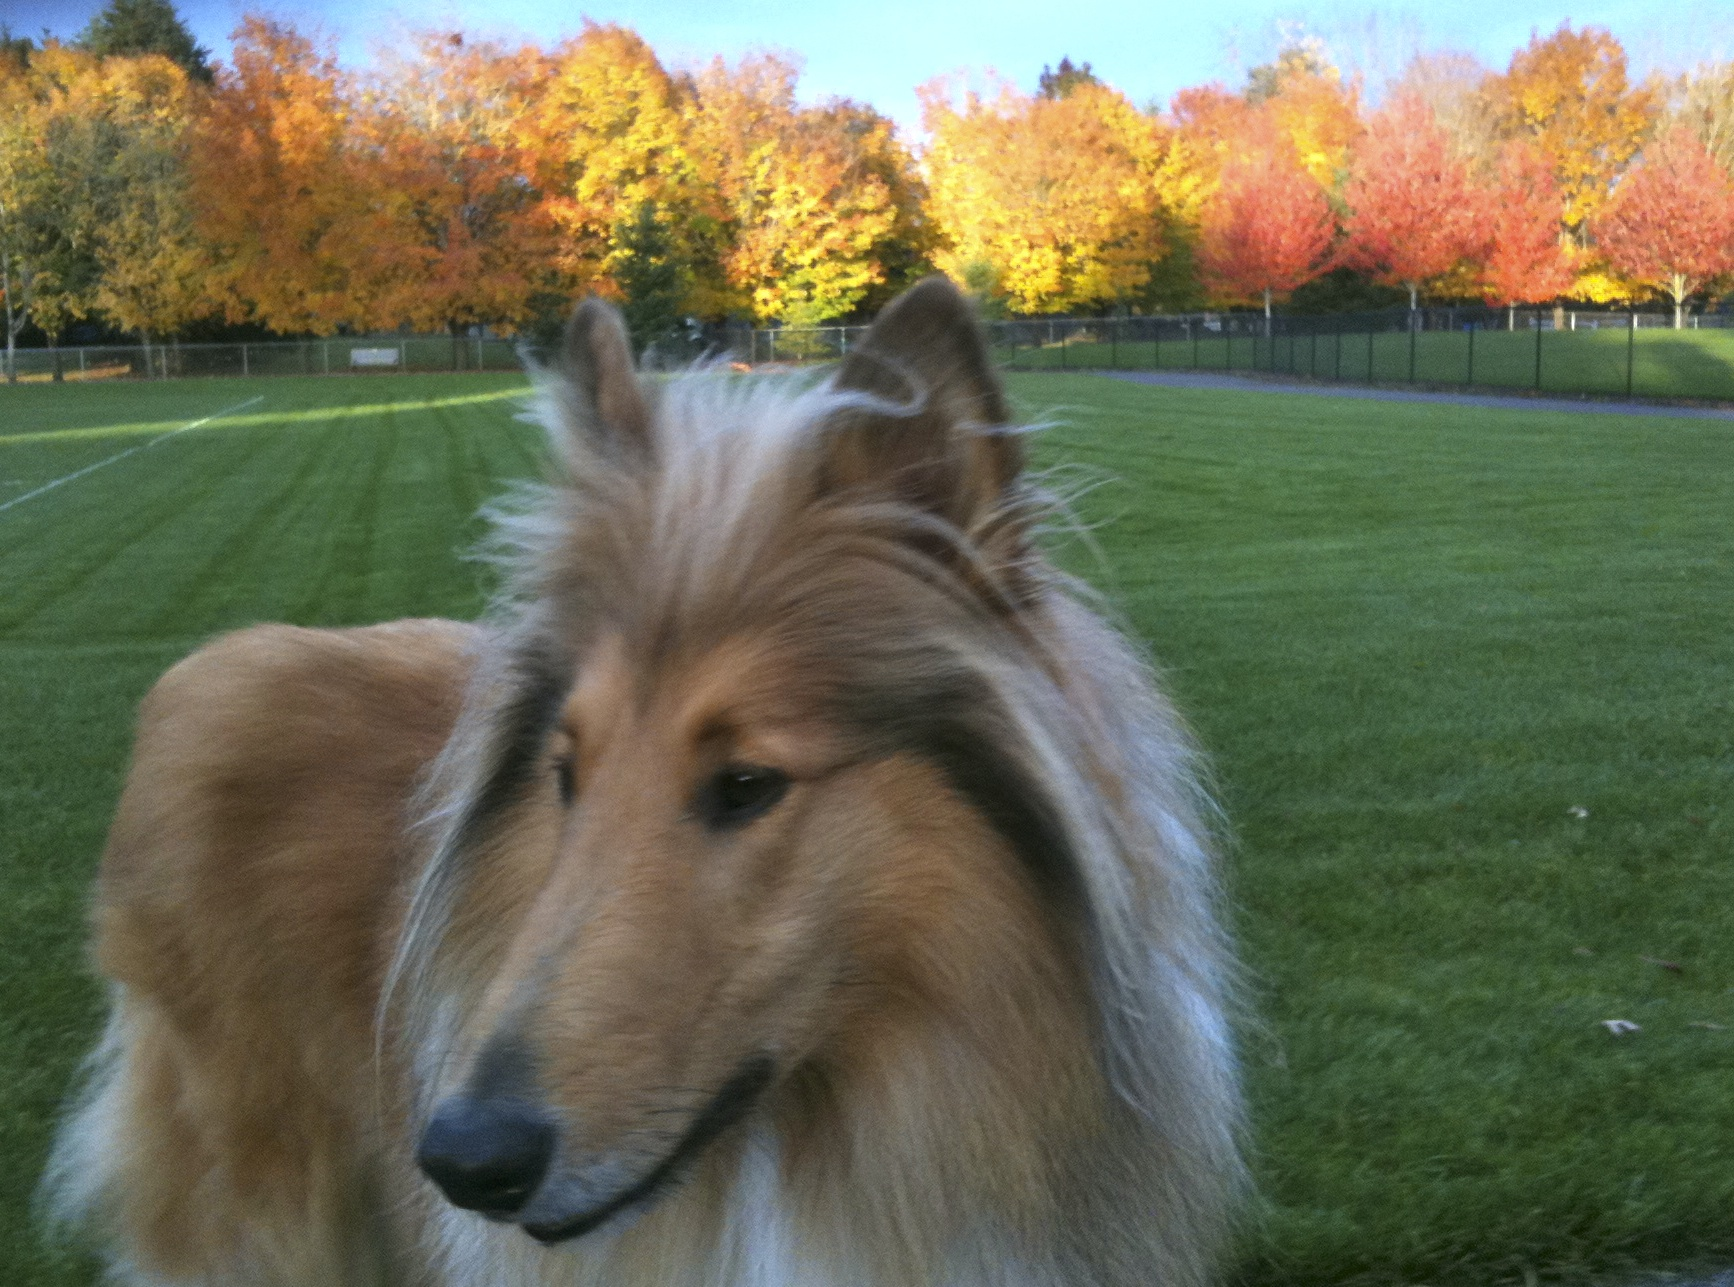 Scotty in the park in autumn